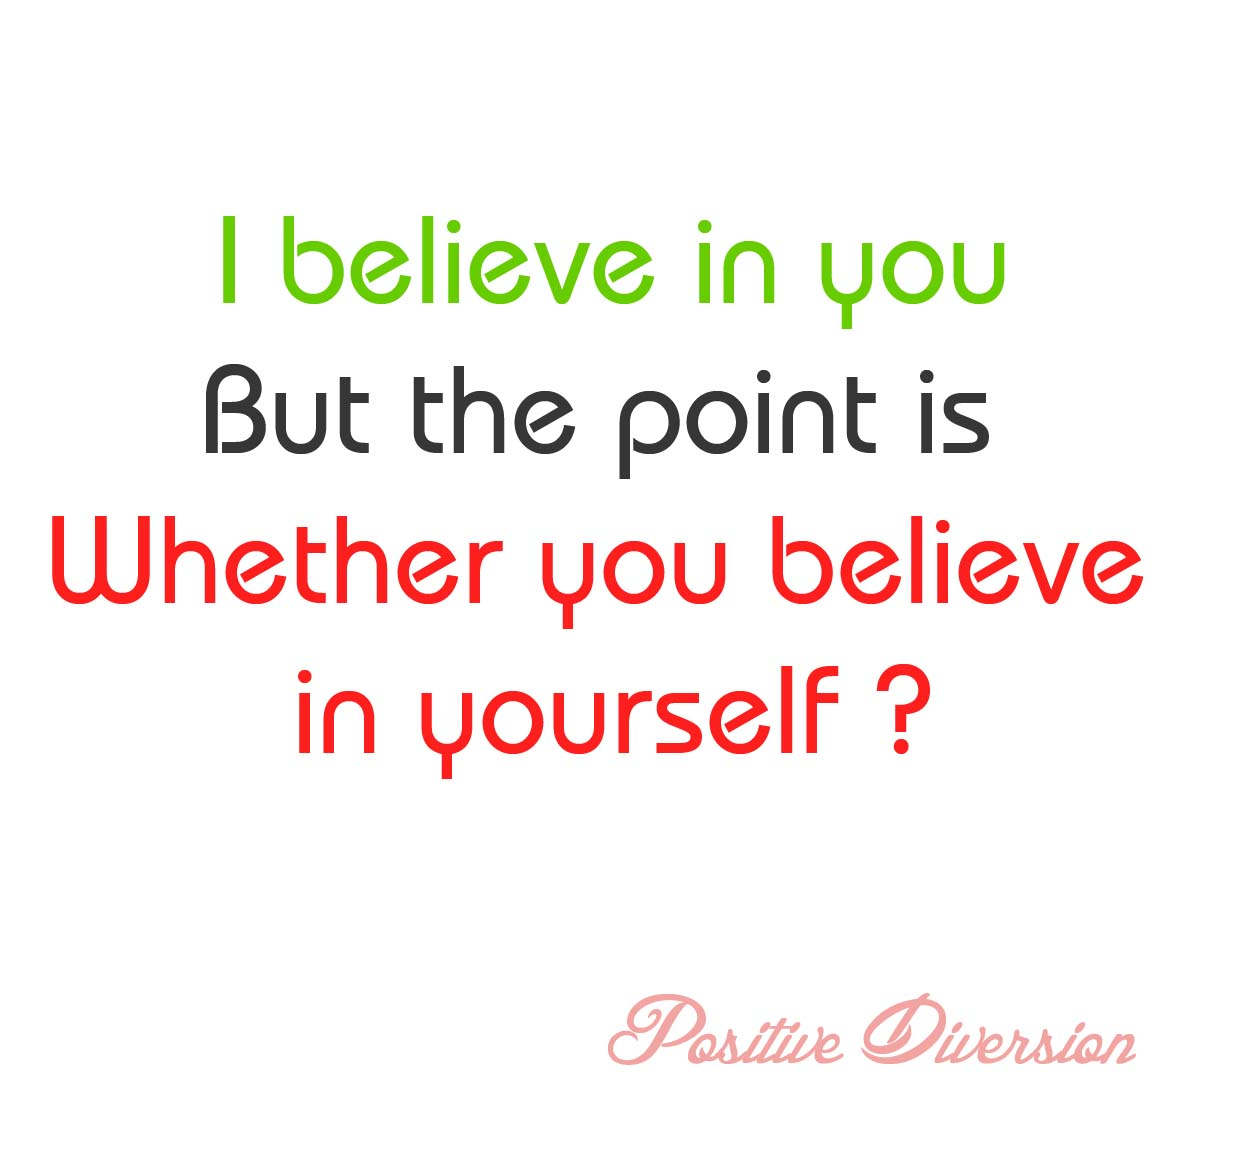 Self Help Quotes Positive Diversion Quotes